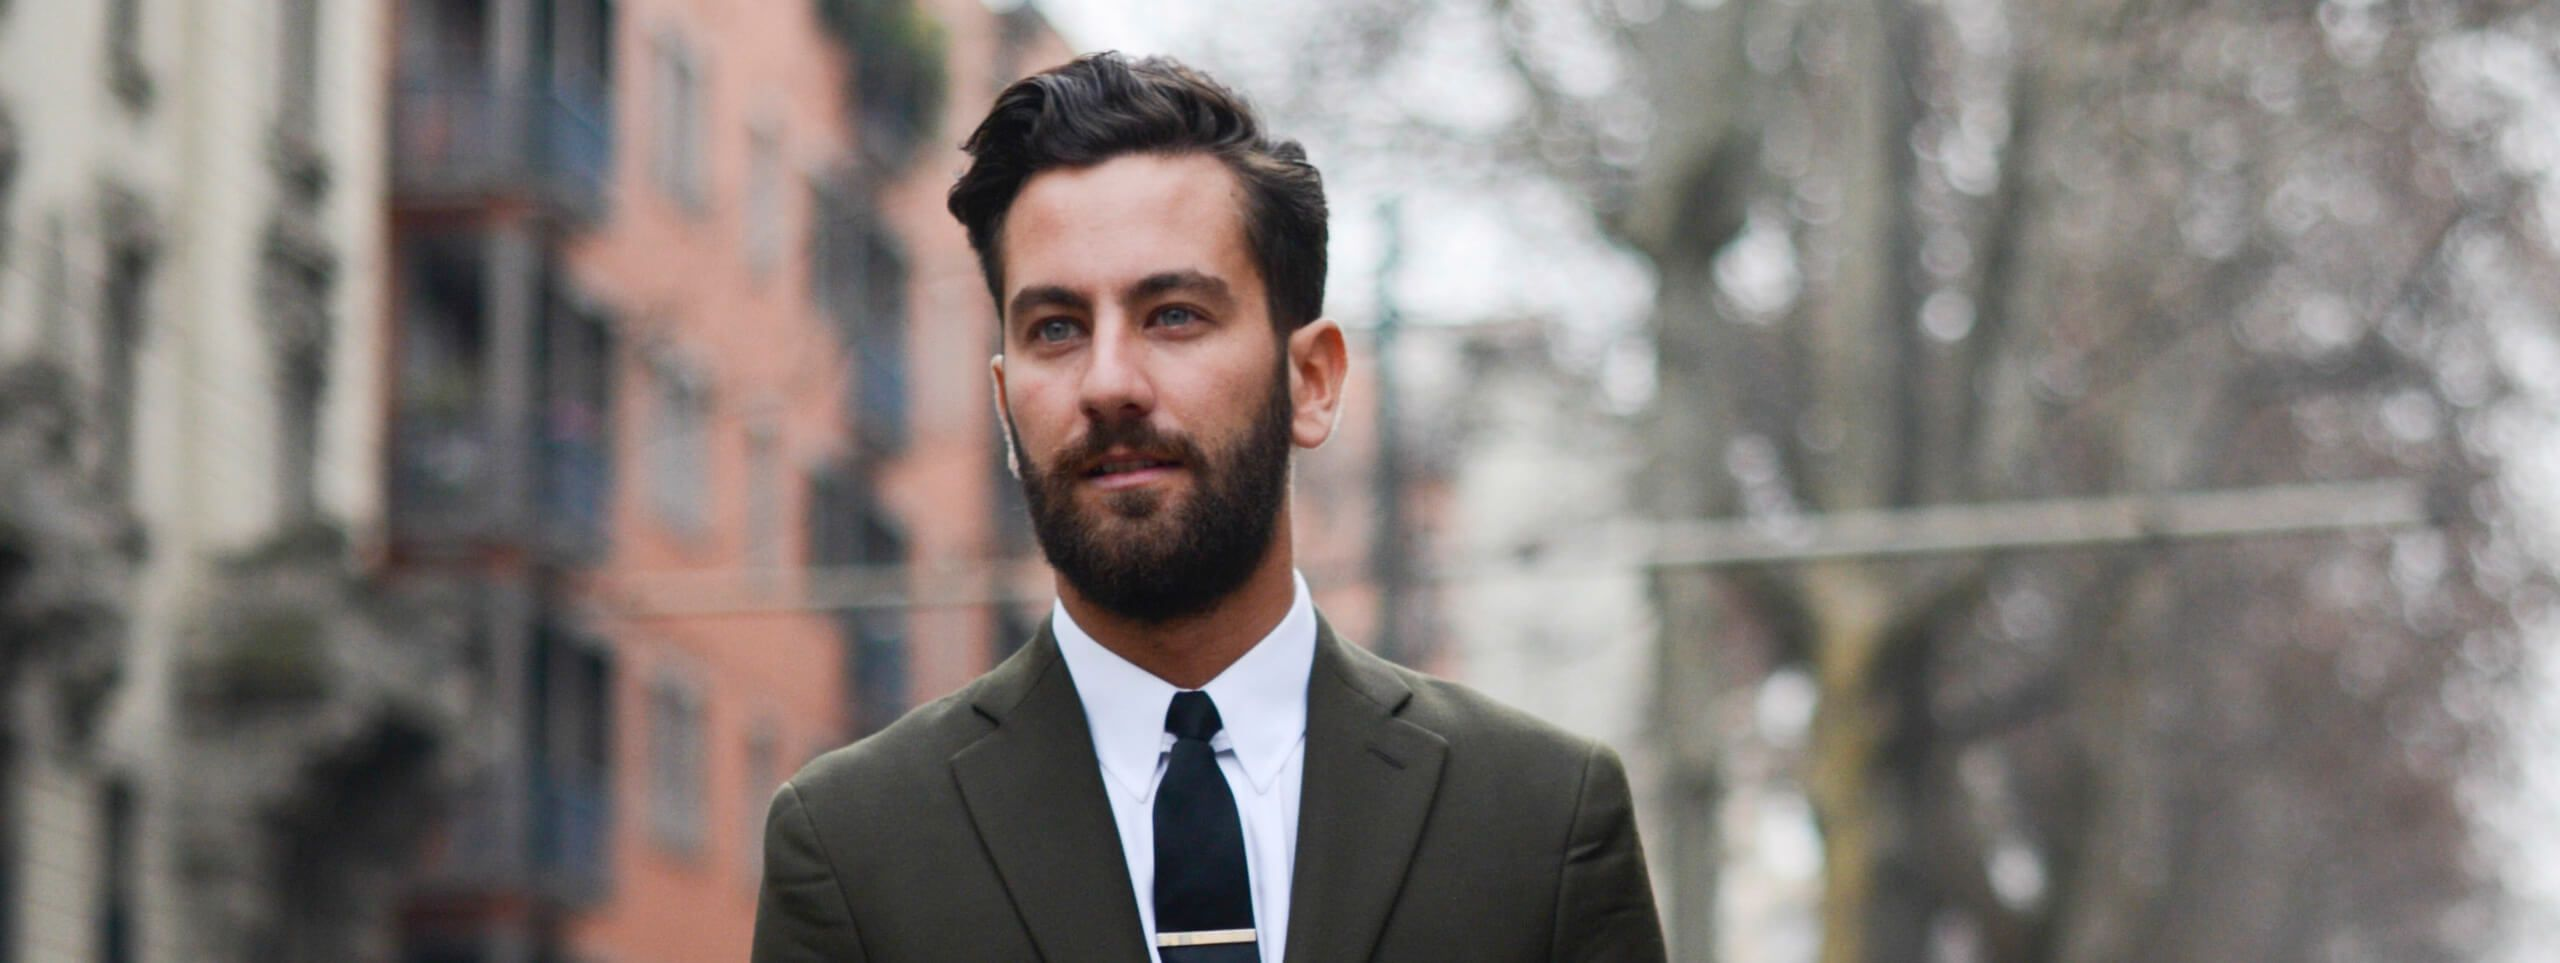 Suited man with a beard and short hairstyle